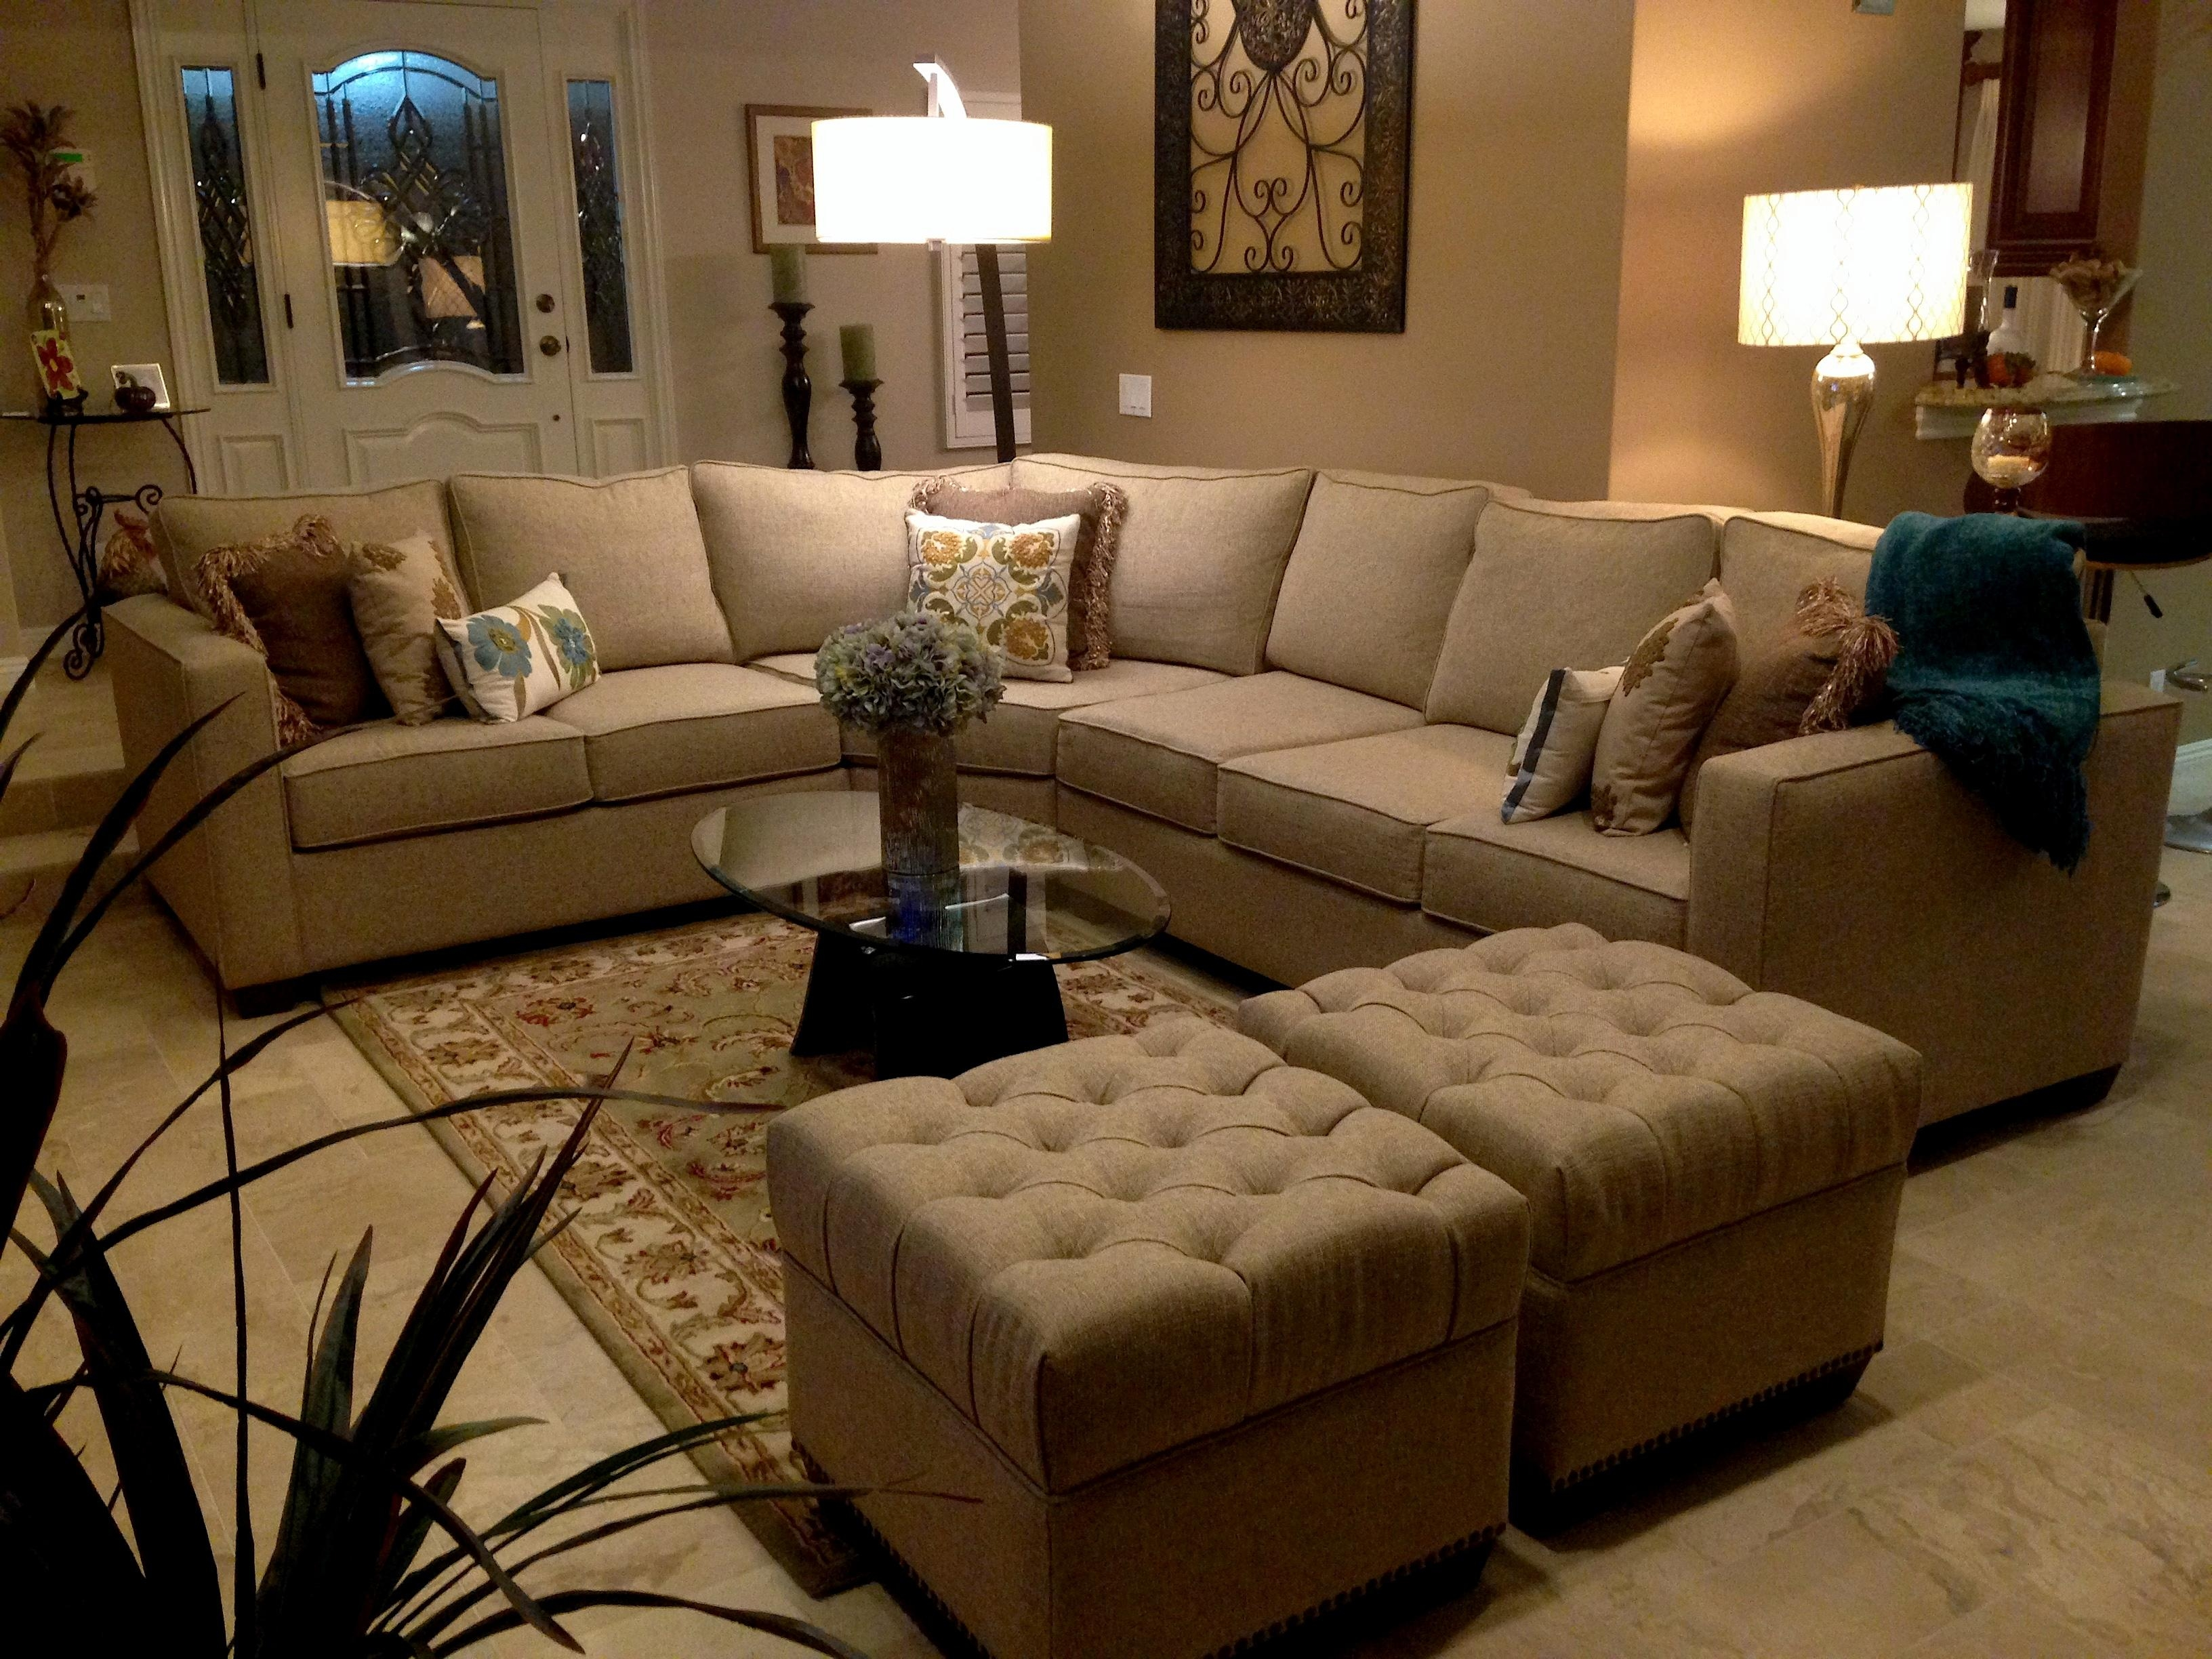 Beige Color Sectional Sofa | Tehranmix Decoration In Colored Sectionals (Image 1 of 15) : colored sectionals - Sectionals, Sofas & Couches